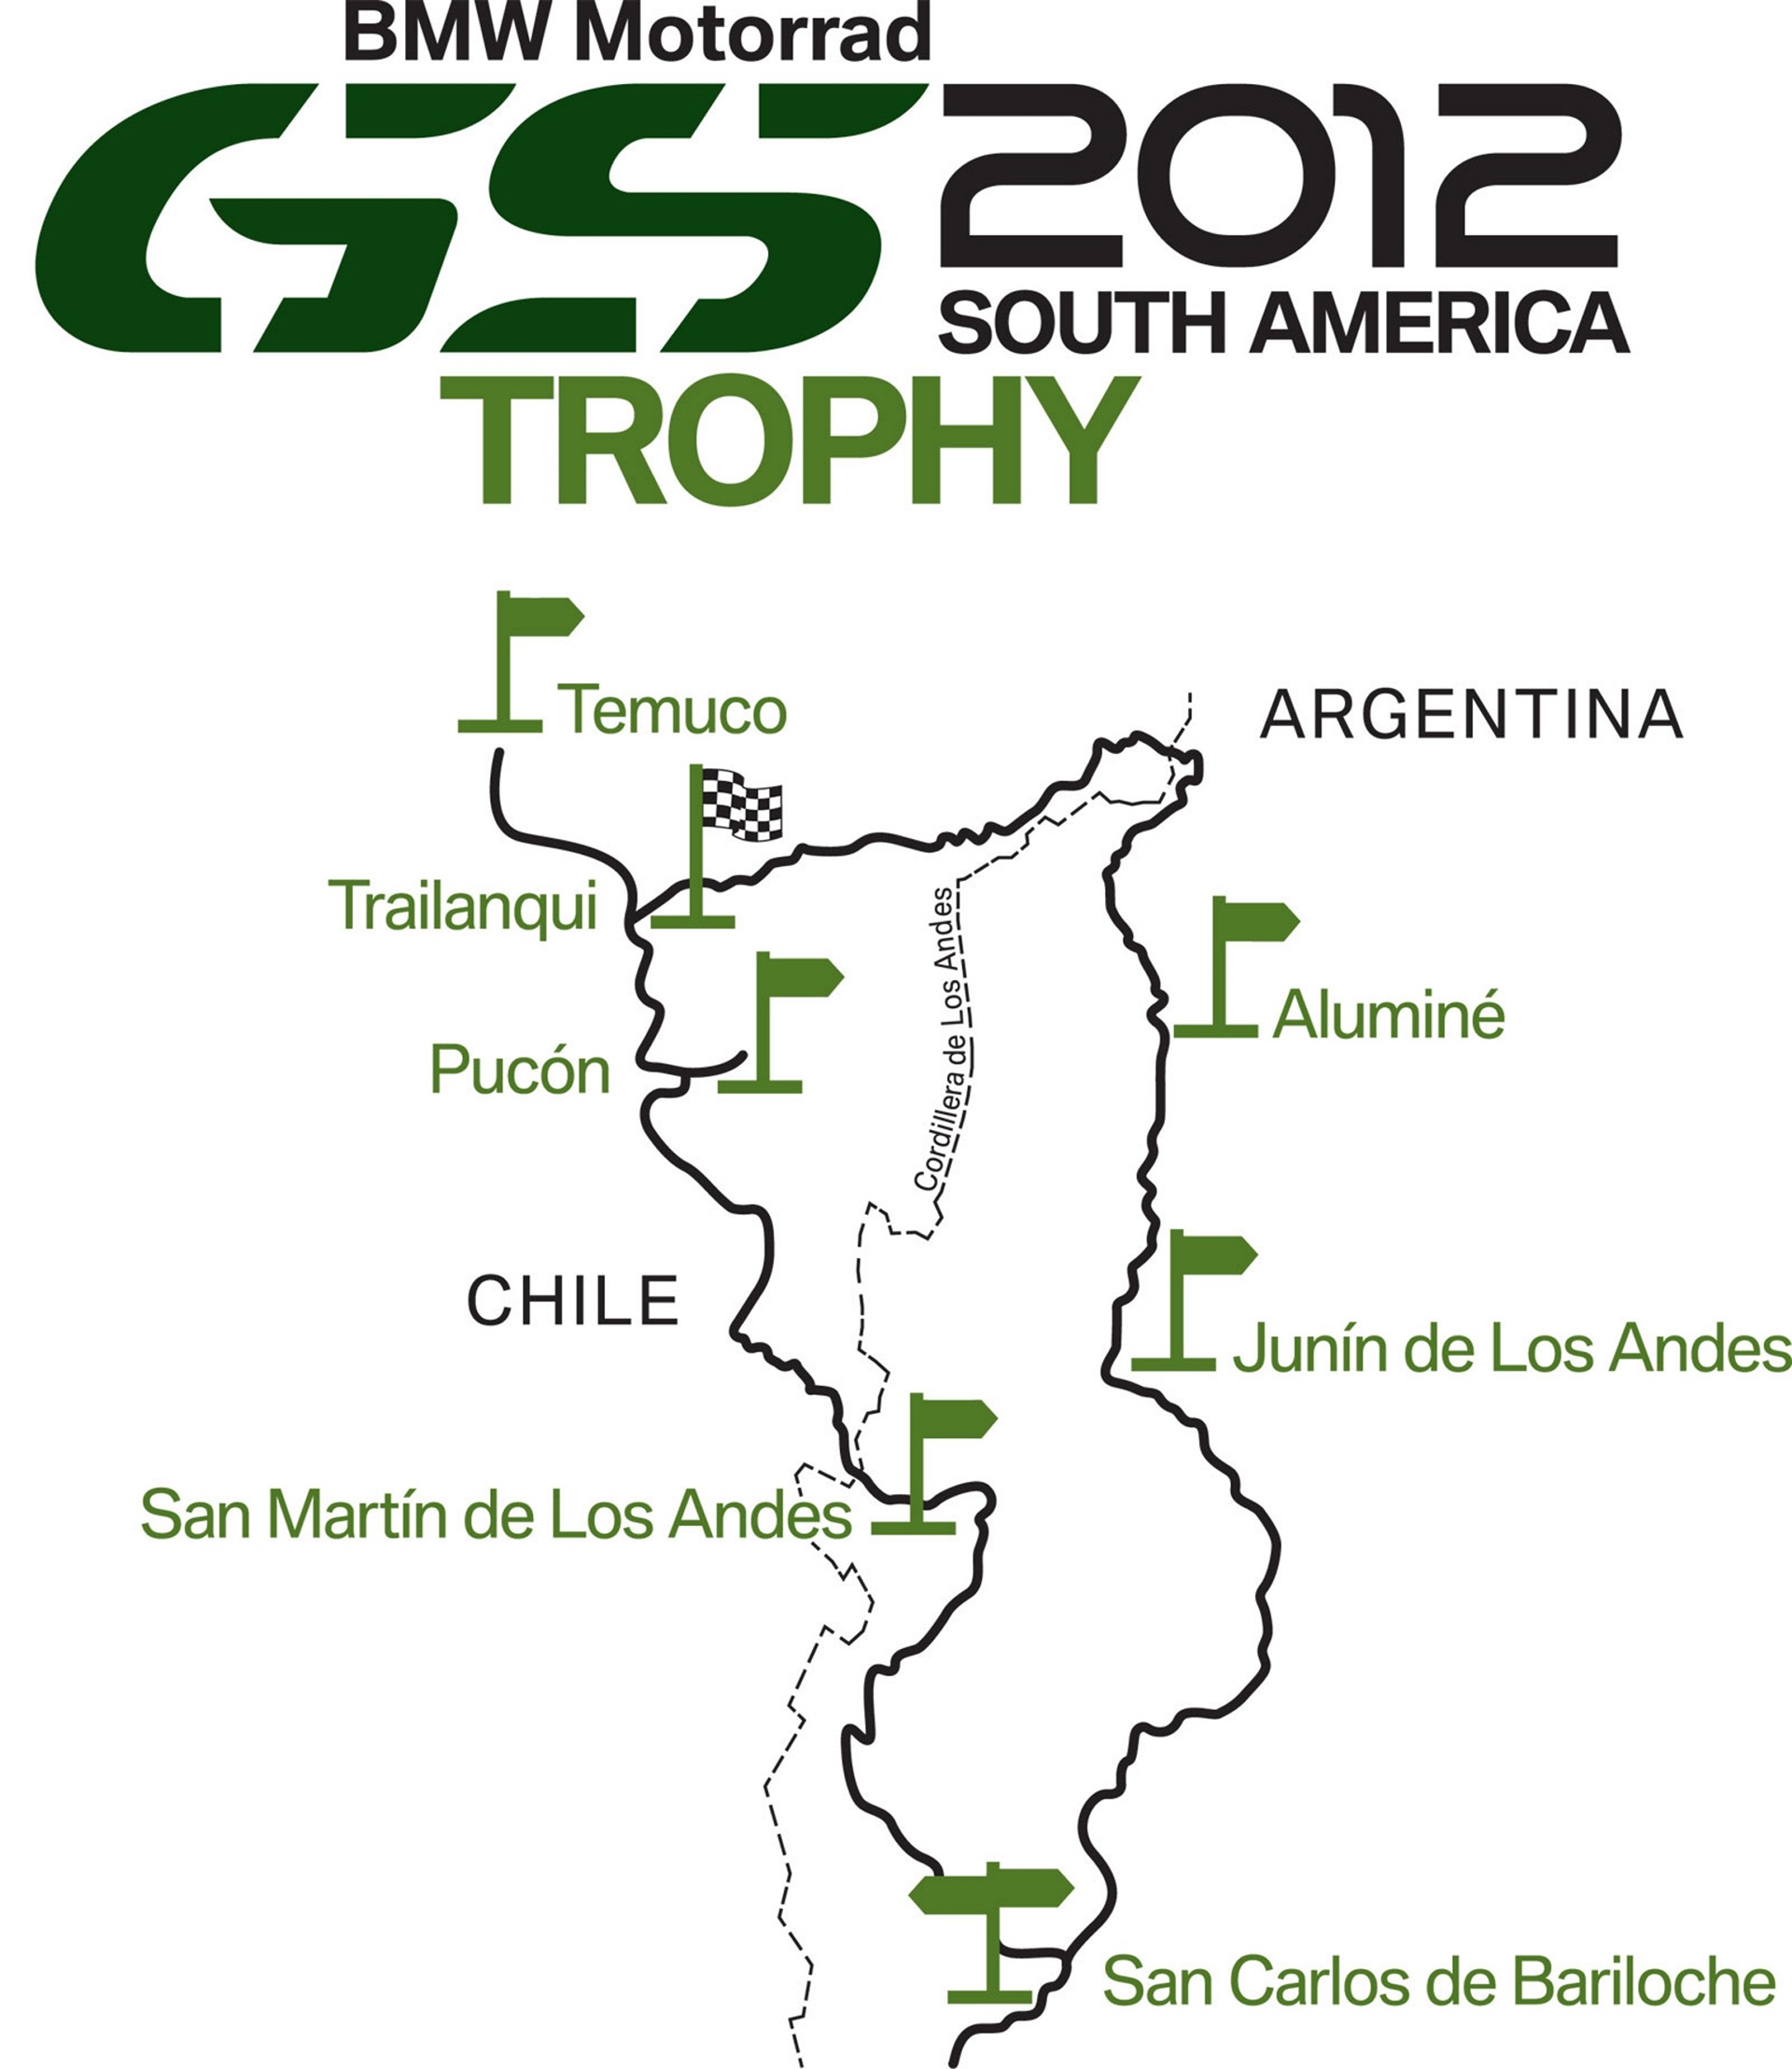 BMW Motorrad GS Trophy South America